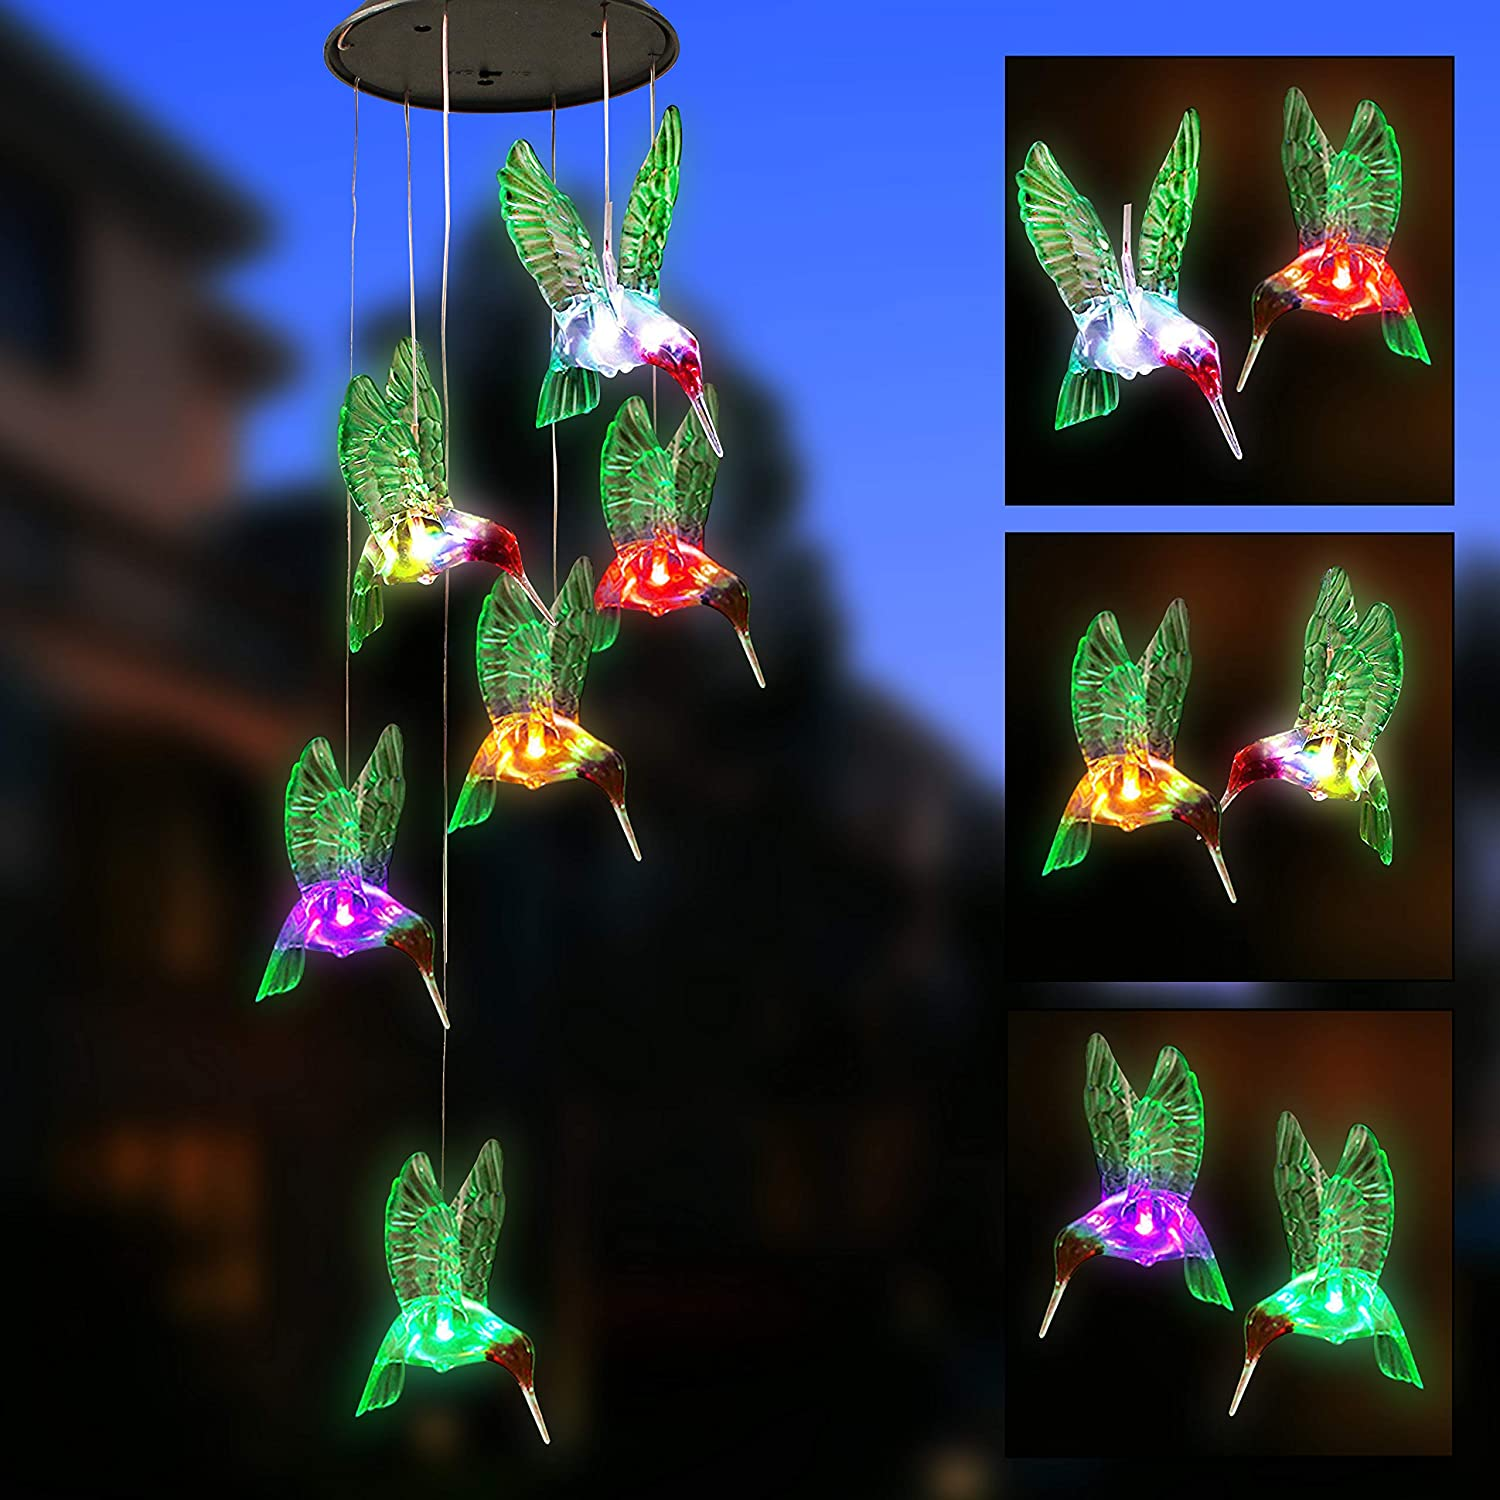 Joiedomi Solar Hummingbird Wind Chime Color Changing Outdoor Hanging Decorative Garden Lights Xmas Gifts for Decor Home Garden Patio Yard Indoor Outdoor